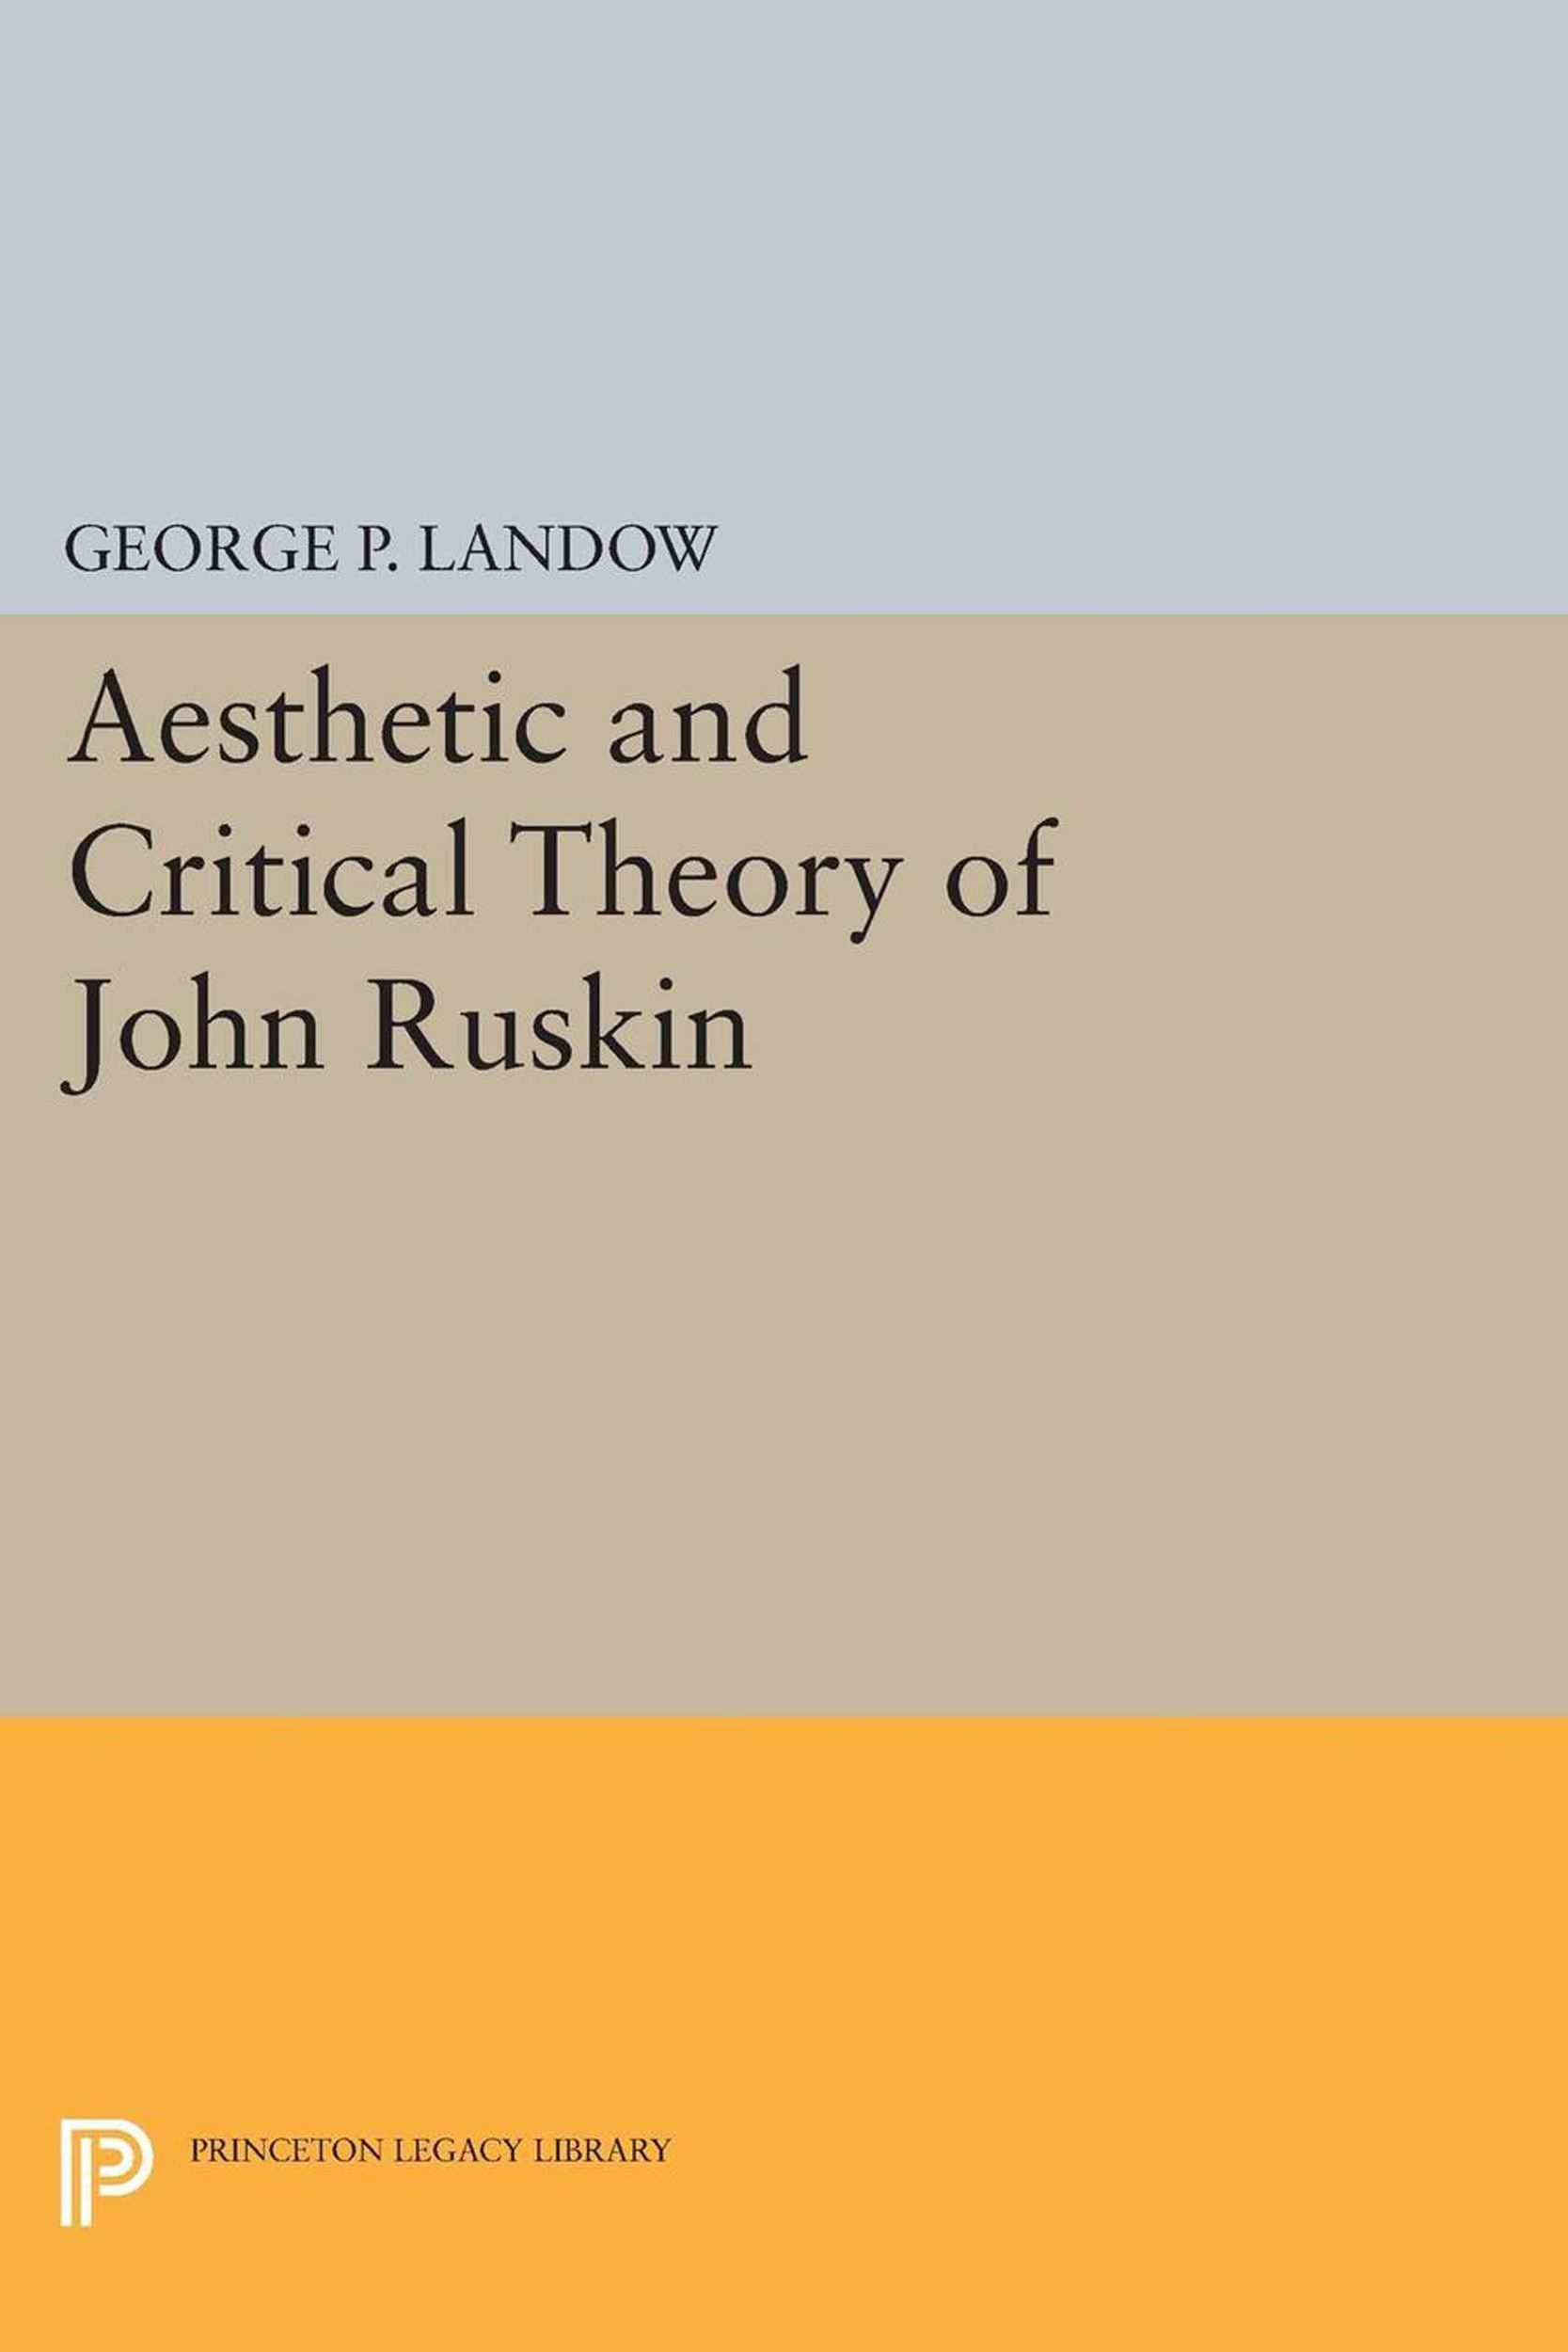 Aesthetic and Critical Theory of John Ruskin